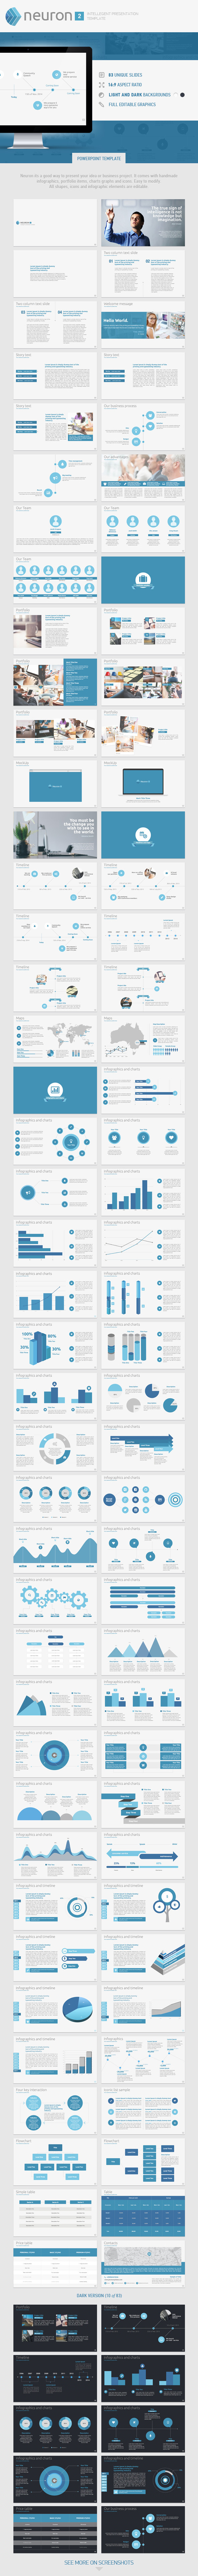 Neuron Two PowerPoint Presentation Template